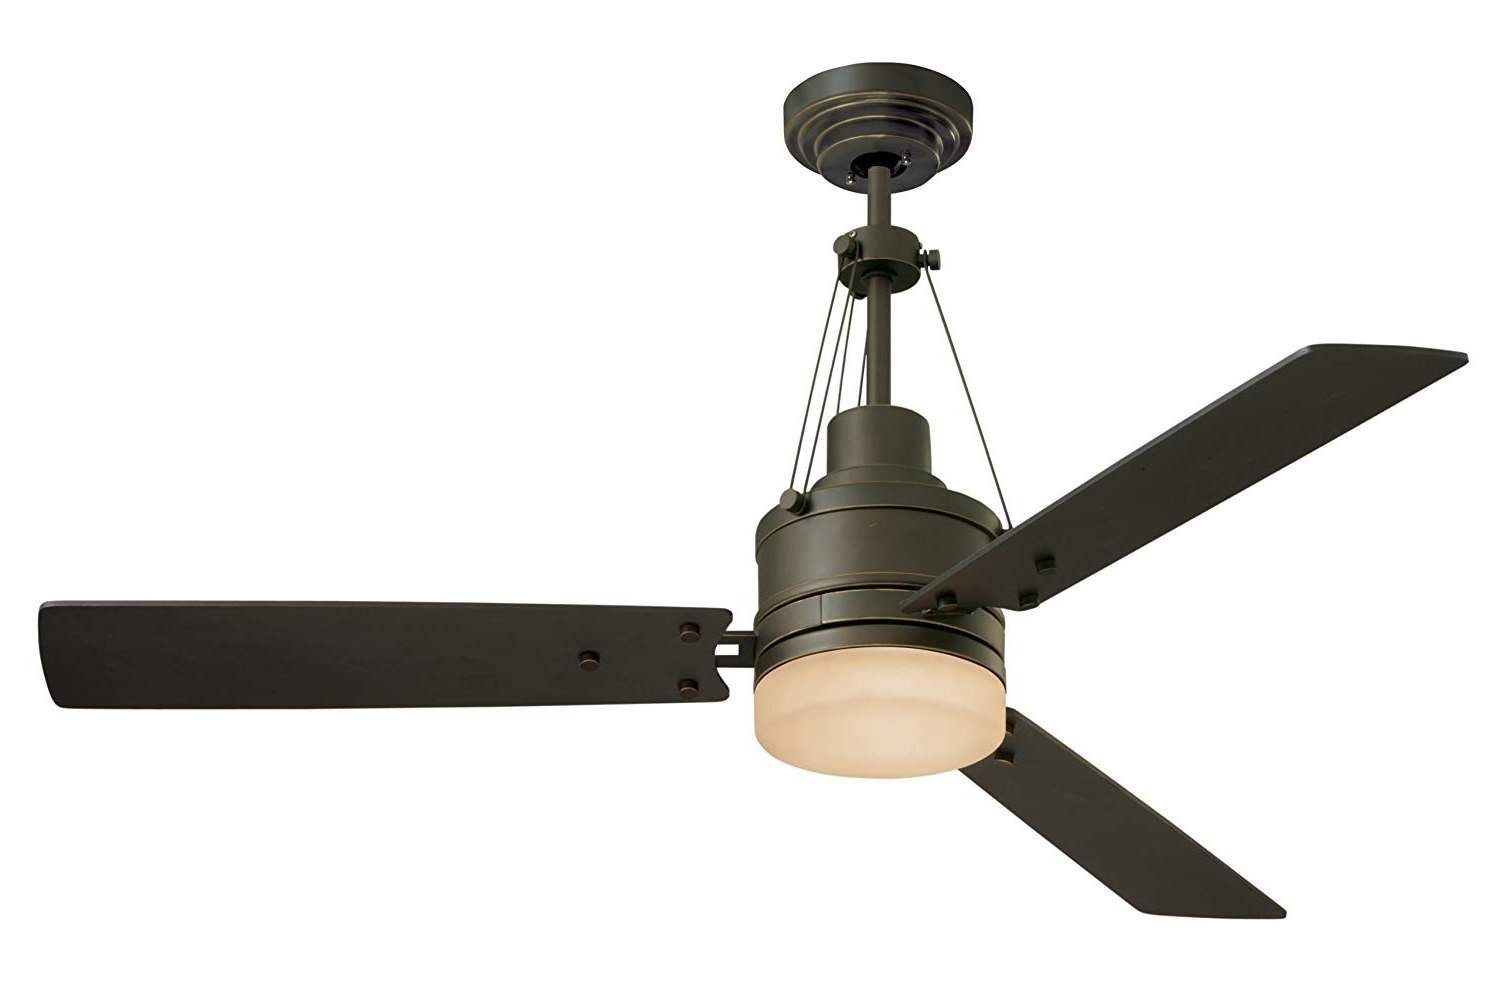 Appealing Emerson Ceiling Fans In Cf205ges Fan With Light And Remote Regarding Most Popular Amazon Outdoor Ceiling Fans With Lights (View 14 of 20)